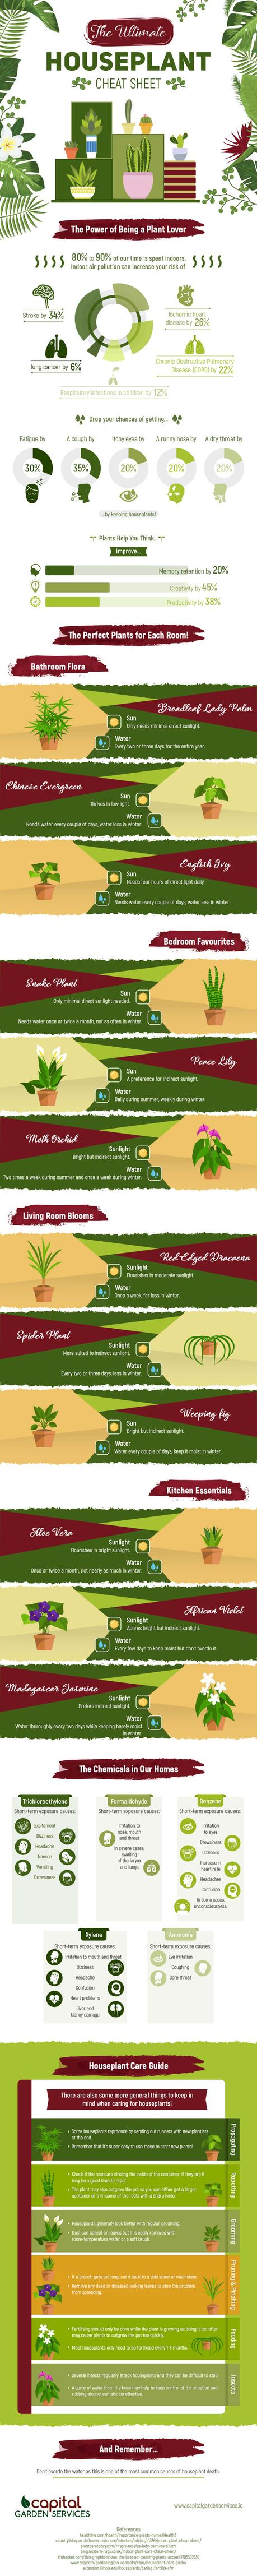 Infographic – The Ultimate Houseplant Cheat Sheet